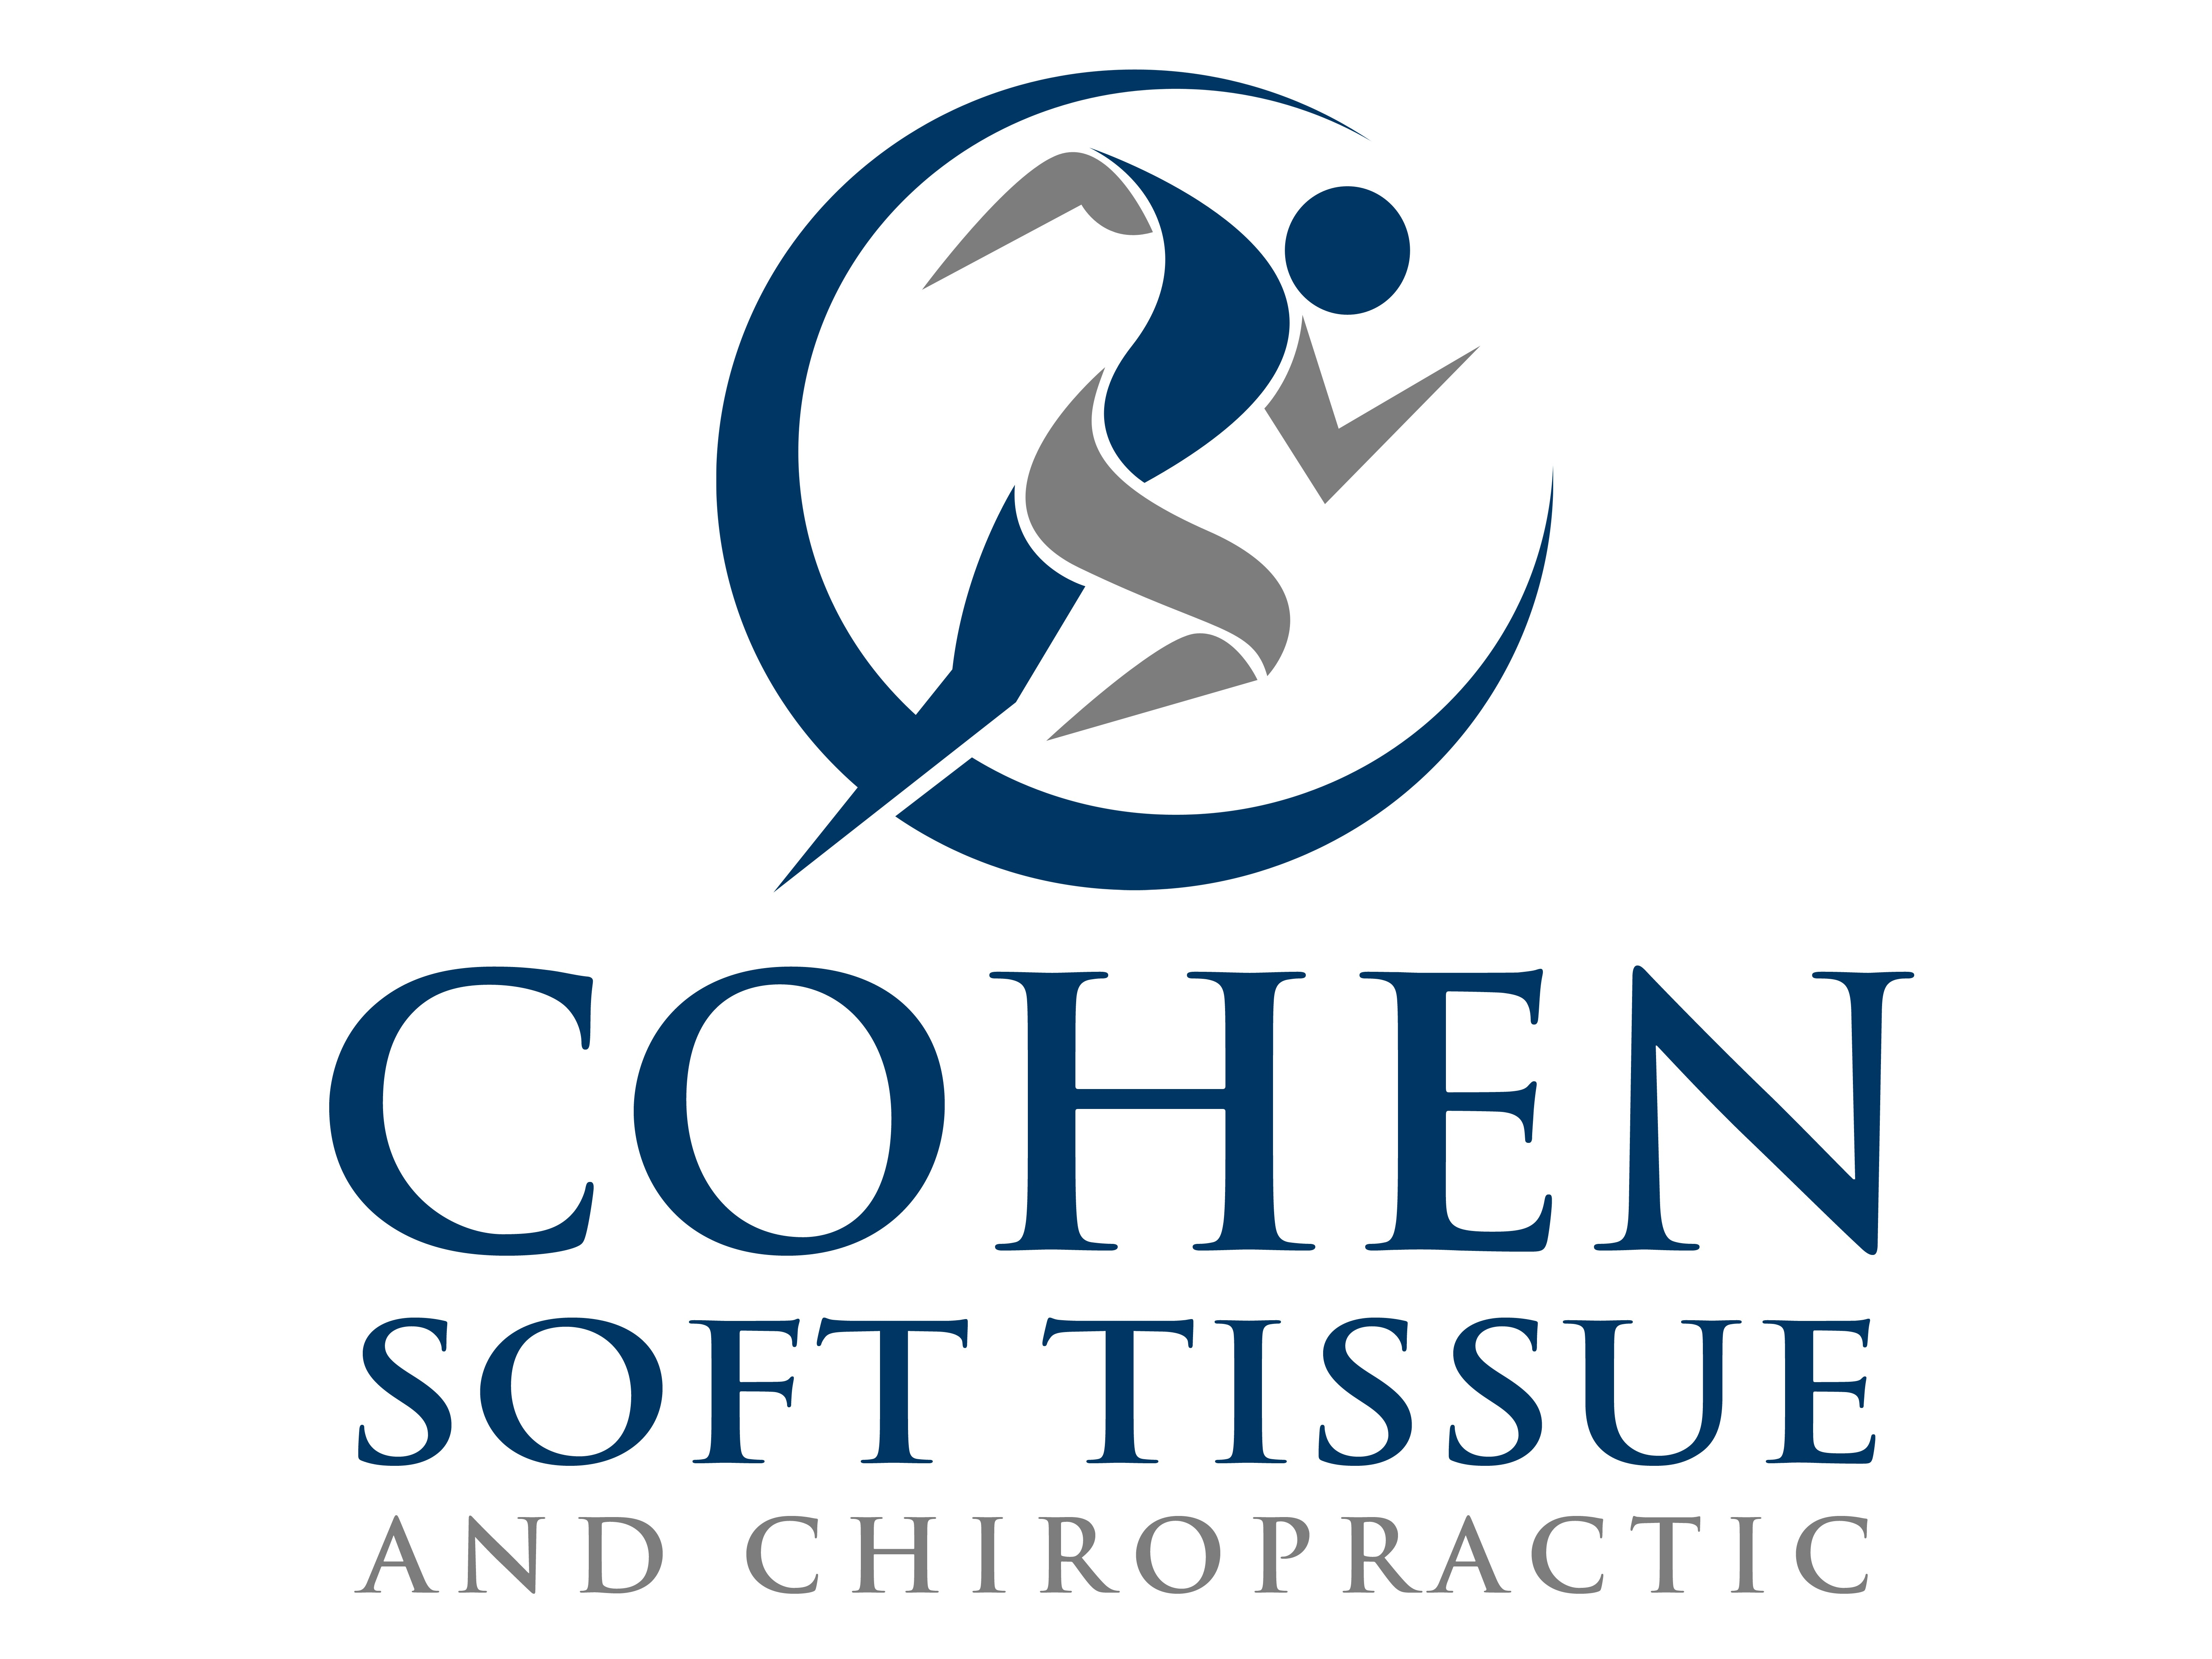 Movement specialist needs professional logo for soft tissue treatment center